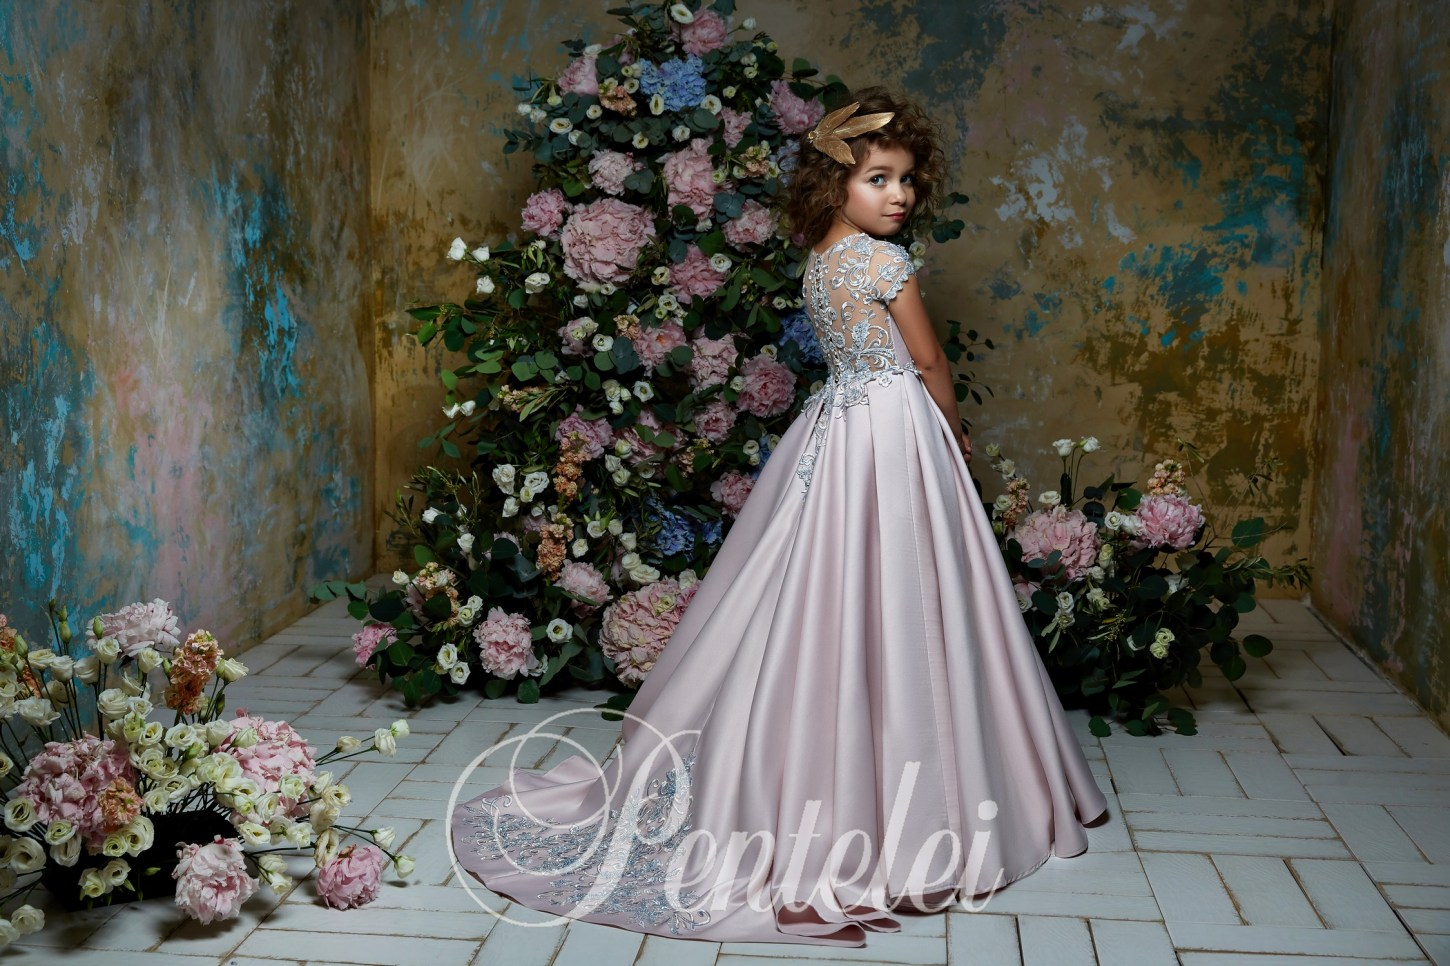 25b9fc6d7 Children's dress wholesale with a full skirt and small sleeves from Pentelei